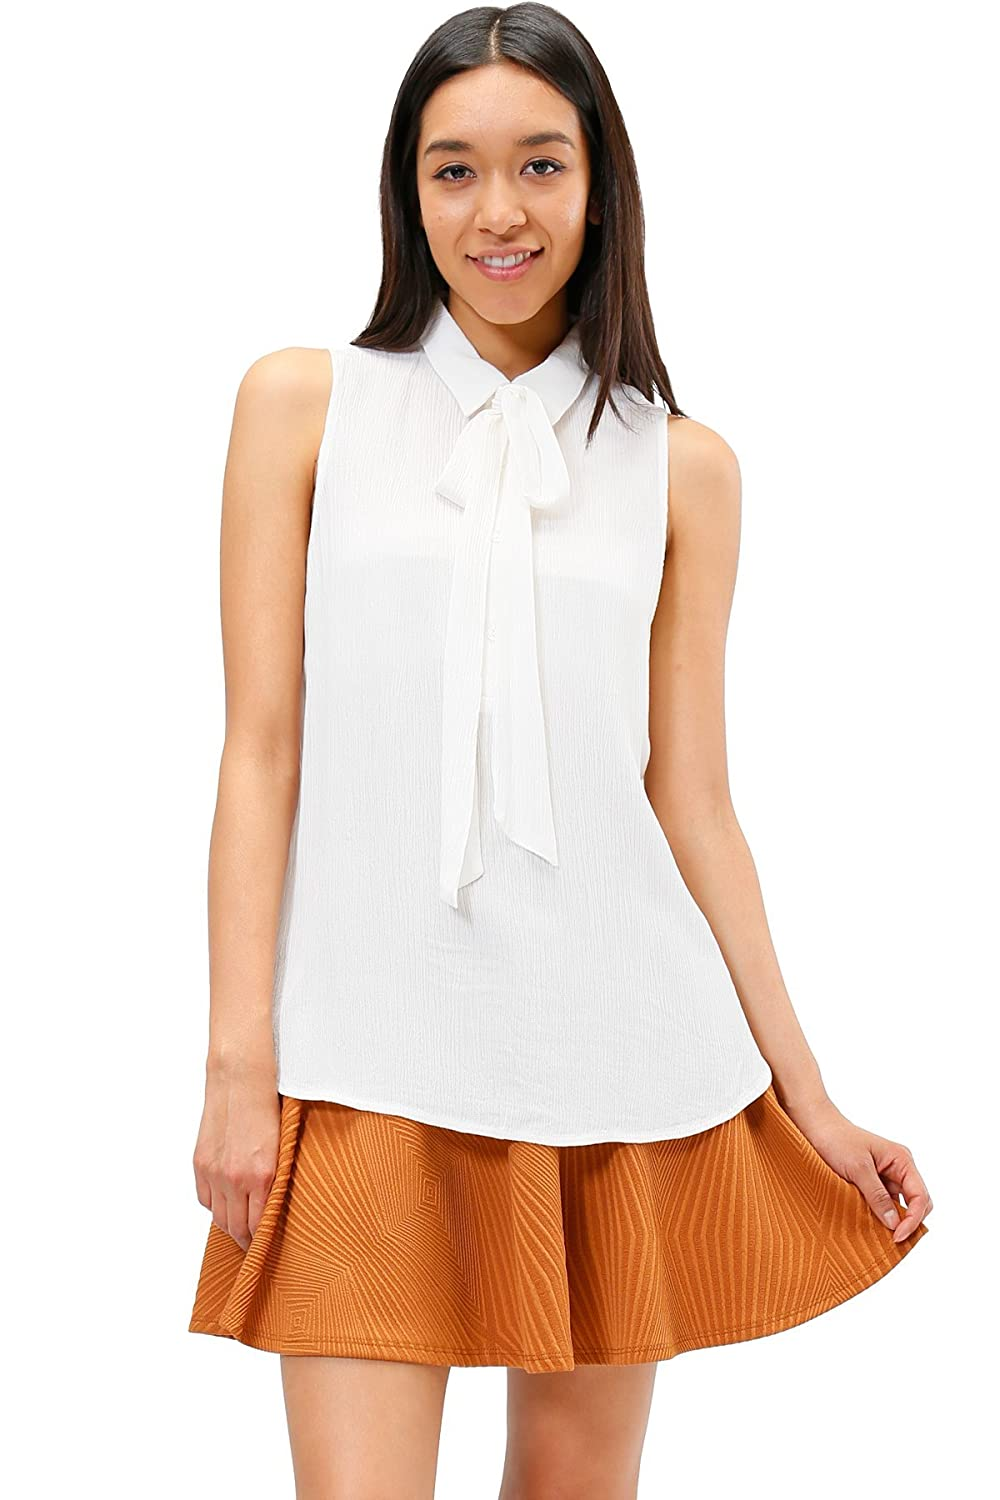 LUMIERE Sleeveless collared neck top with self tie bow in front